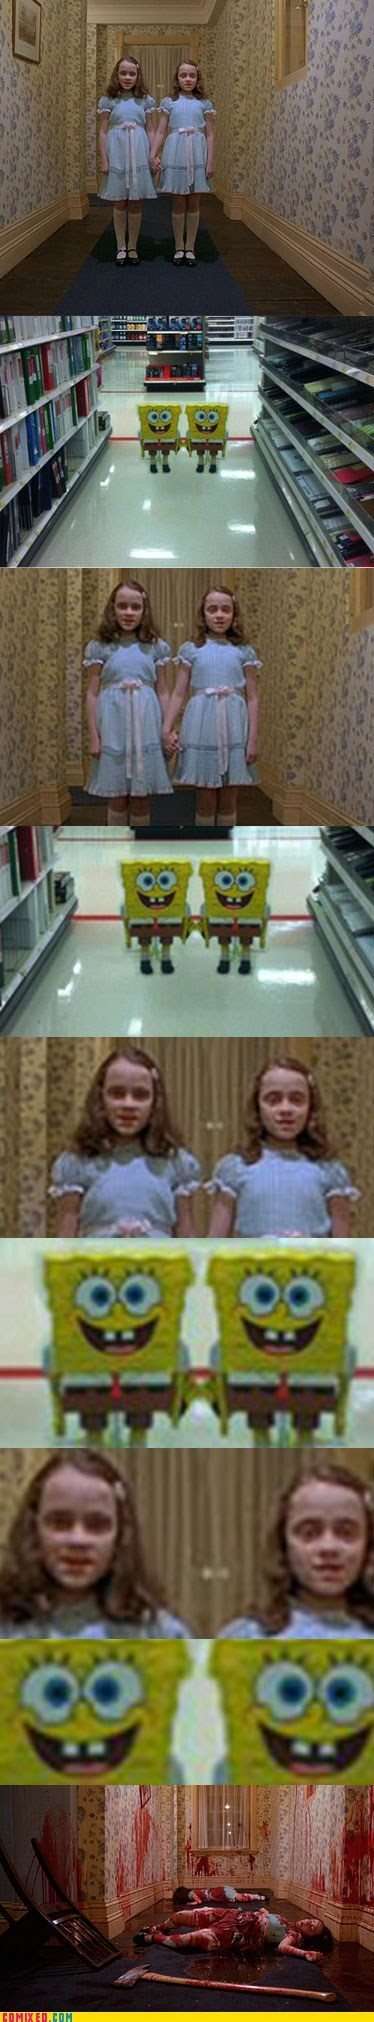 Movie SpongeBob SquarePants a challenger appears twins the shining - 6825863936